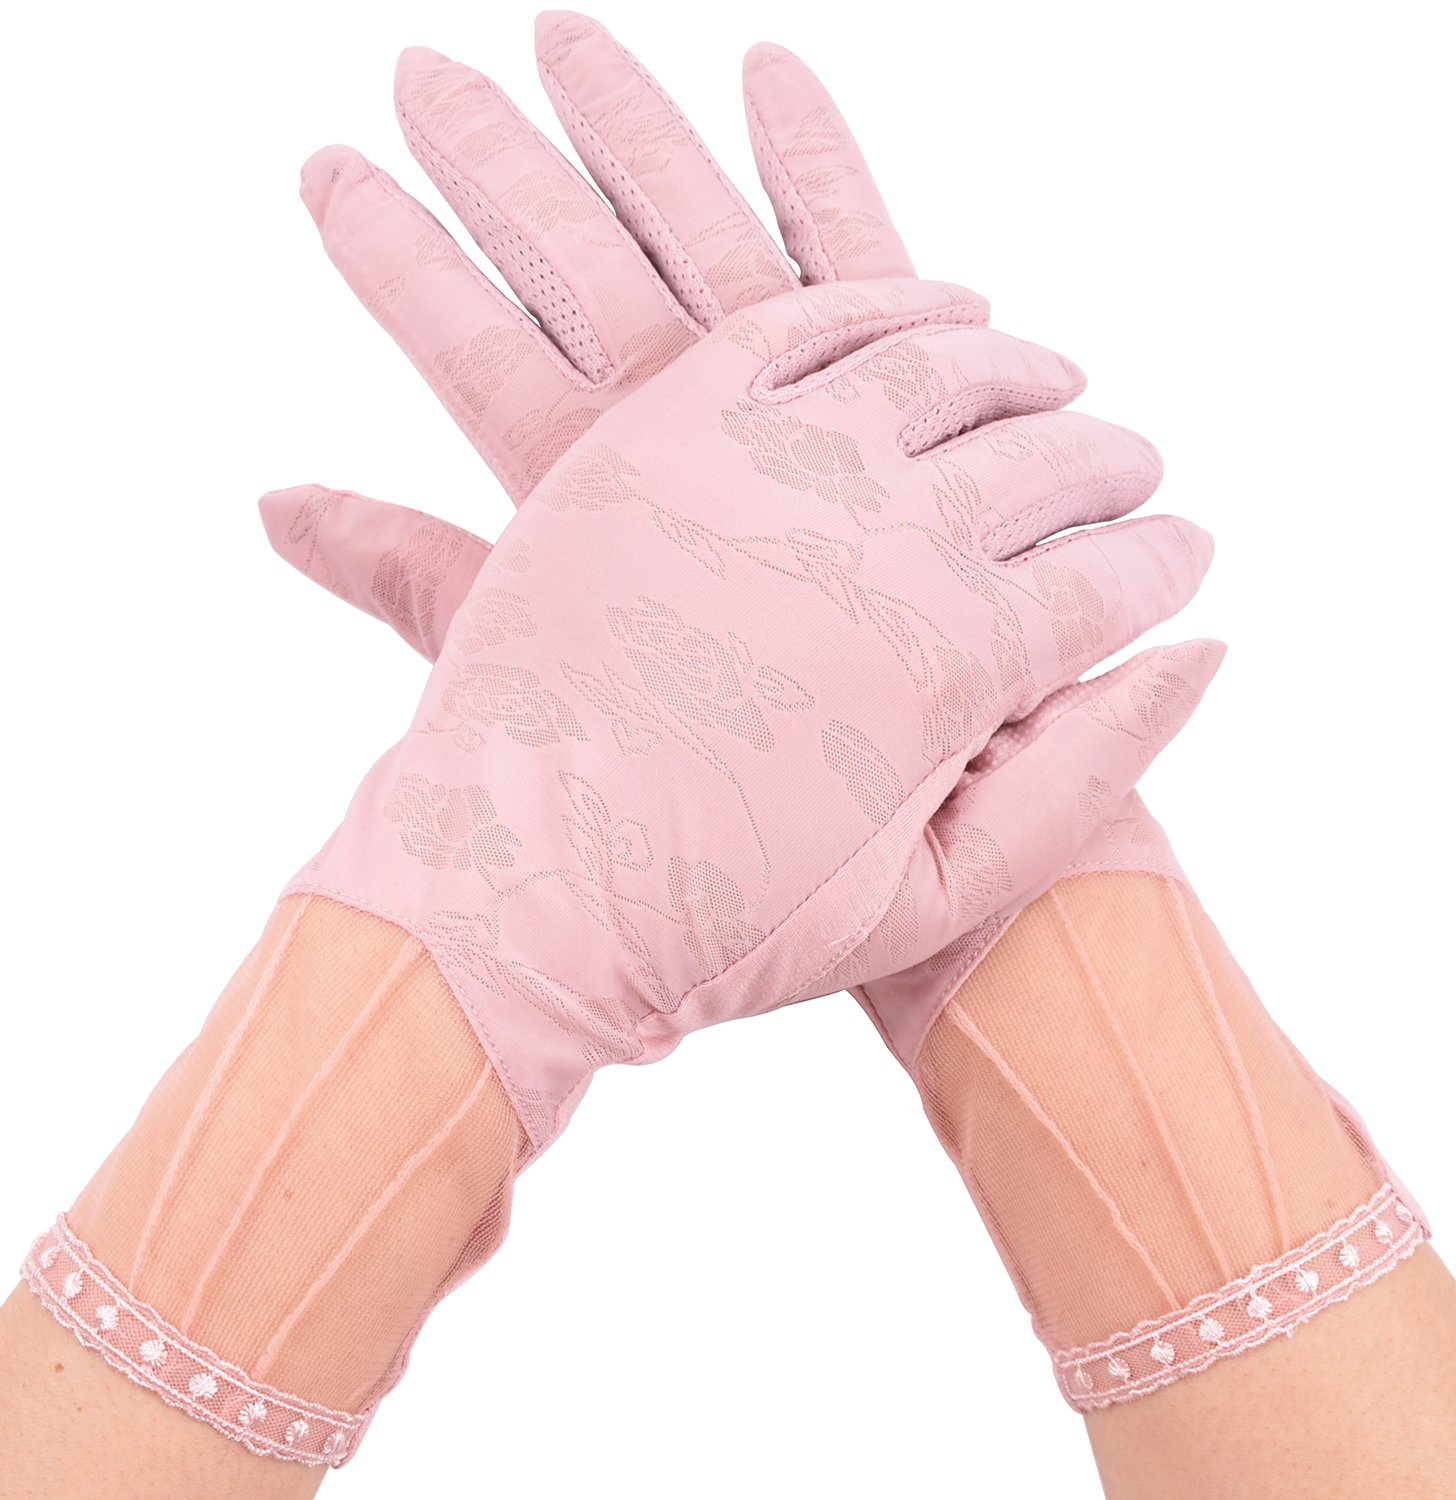 Lace Summer Sunblock Driving Gloves for Women Touchscreen Gloves UV Protection Pink